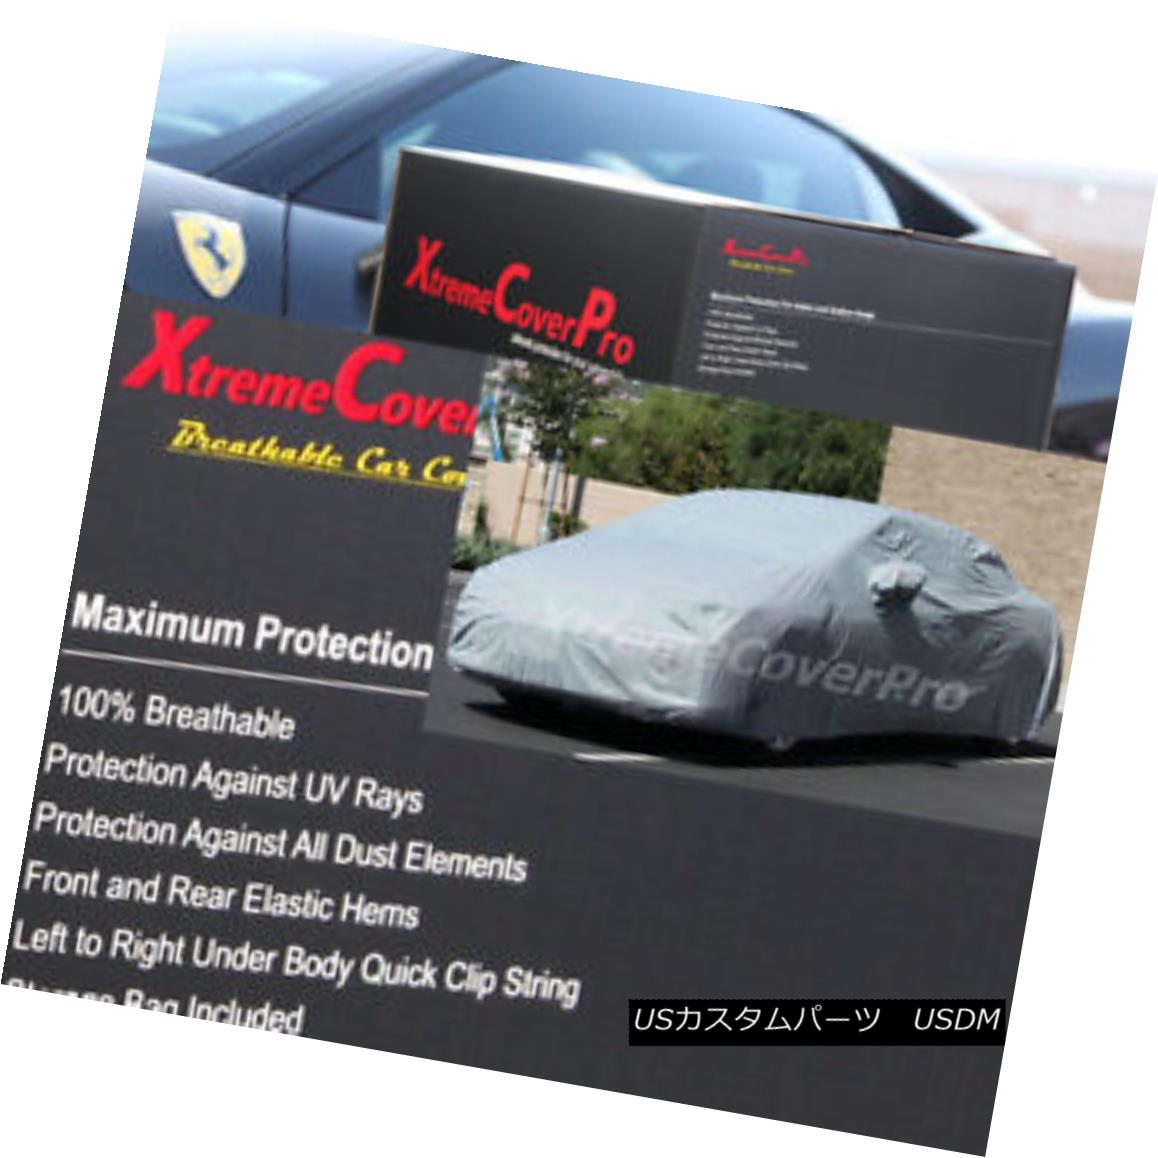 カーカバー 2000 2001 2002 2003 2004 Jaguar S-TYPE Breathable Car Cover w/MirrorPocket 2000 2001 2002 2003 2004 Jaguar S-TYPE通気性車カバー付きMirrorPocket